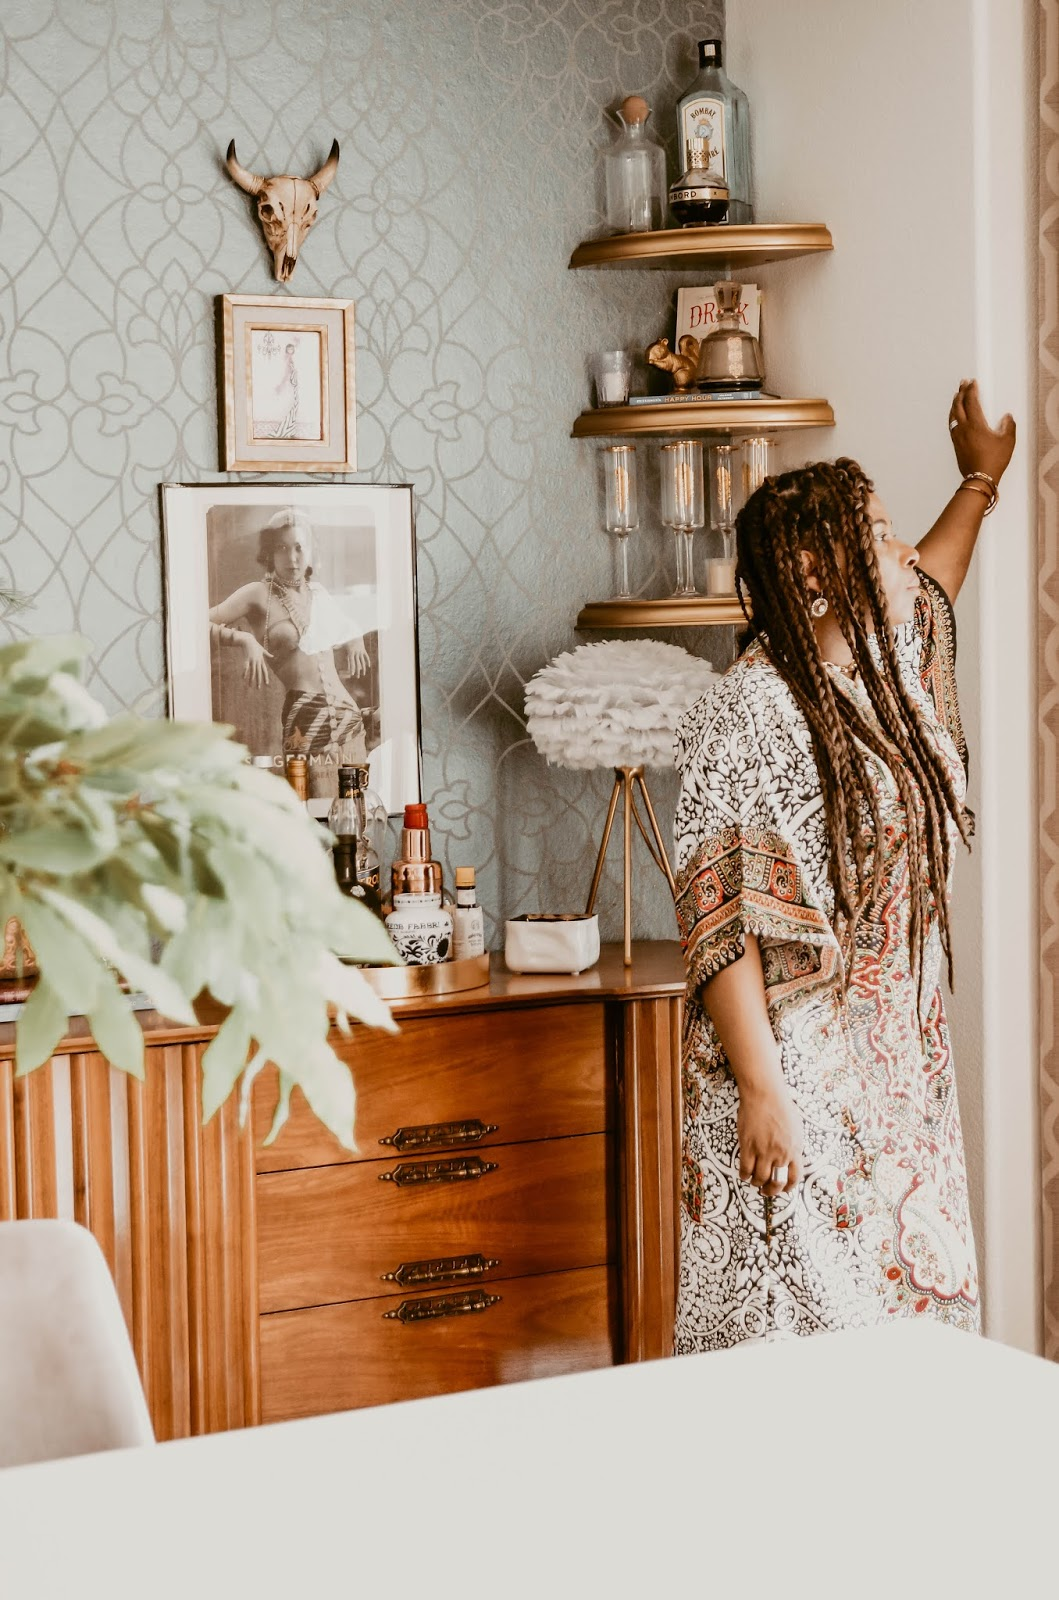 kimono-style-day-dresses-best-options-for-summer2020-staycation-for-sheltering-in-at-home